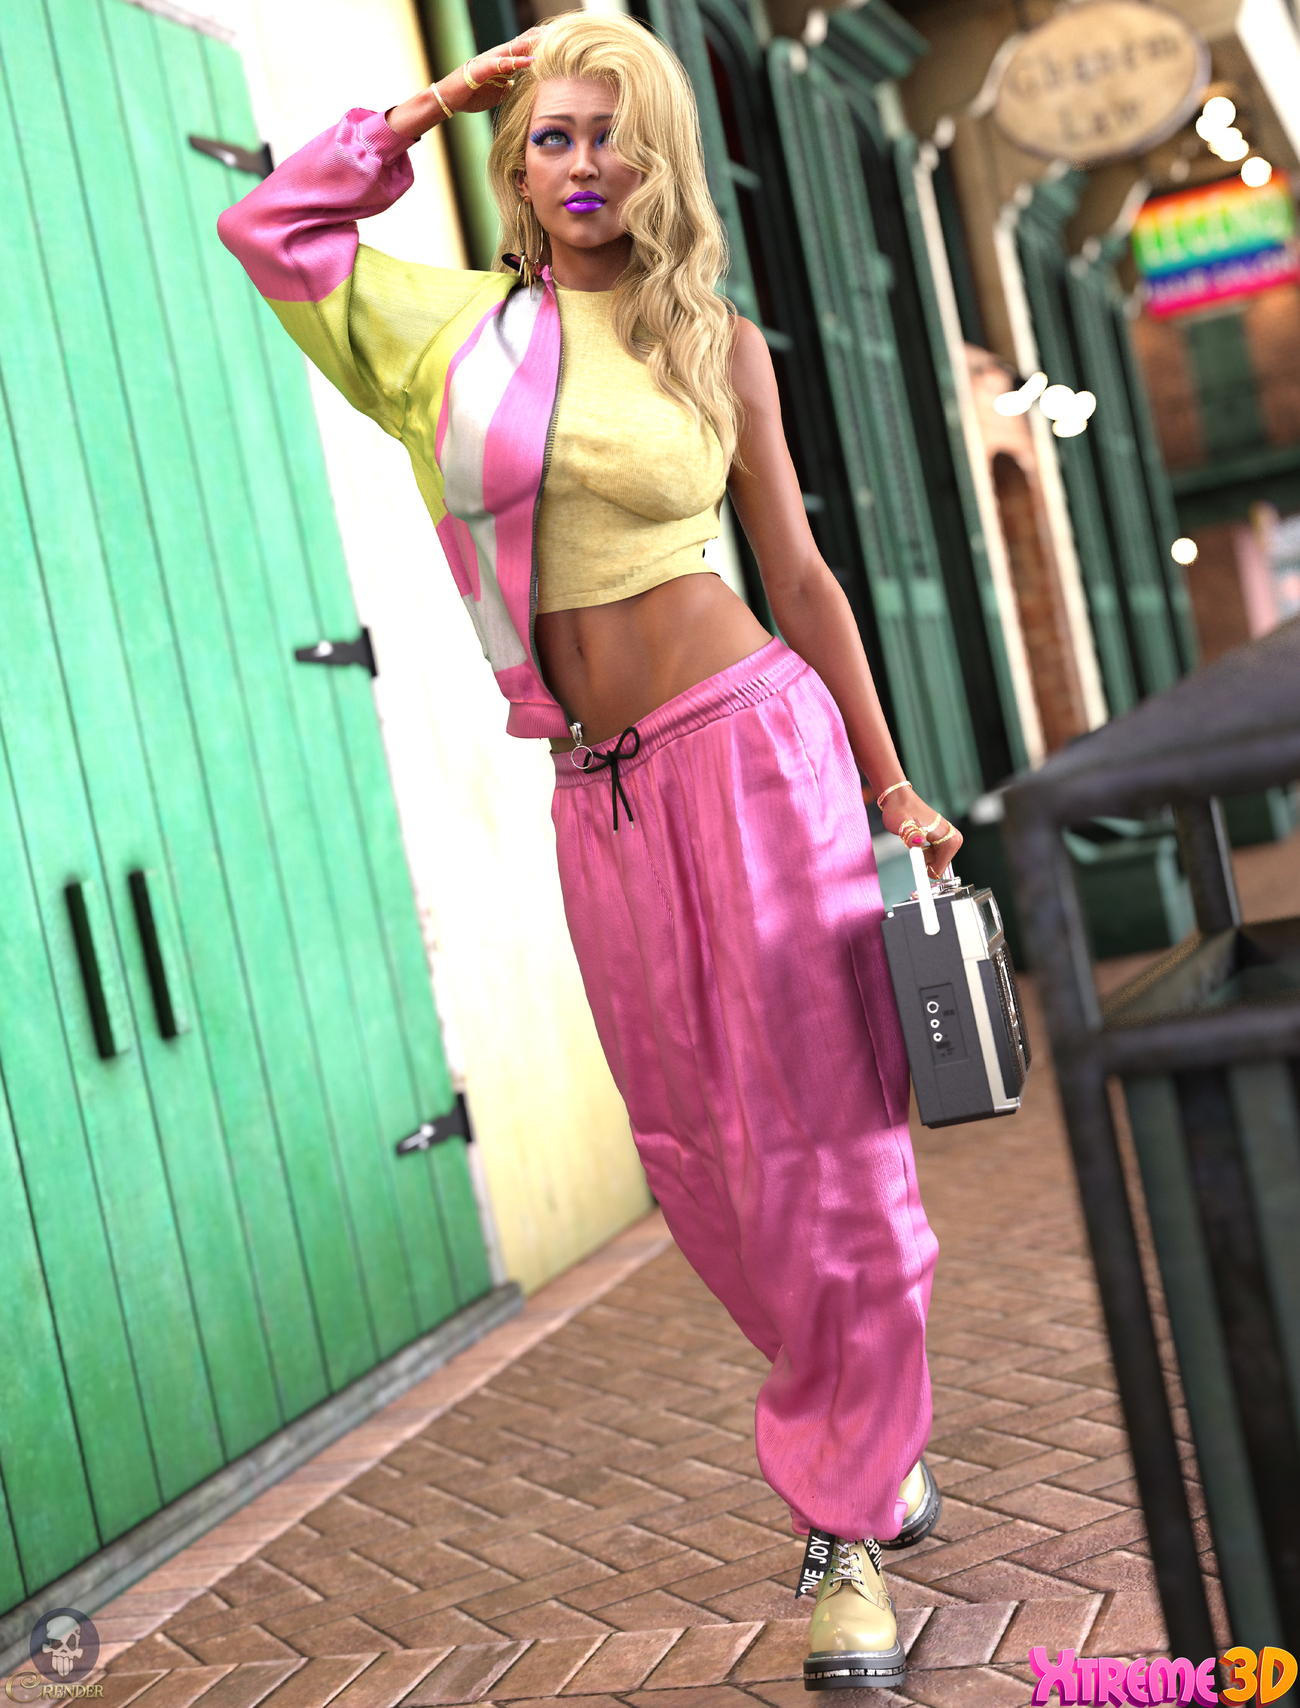 dForce Track Suit outfit for G8F 2 by crender